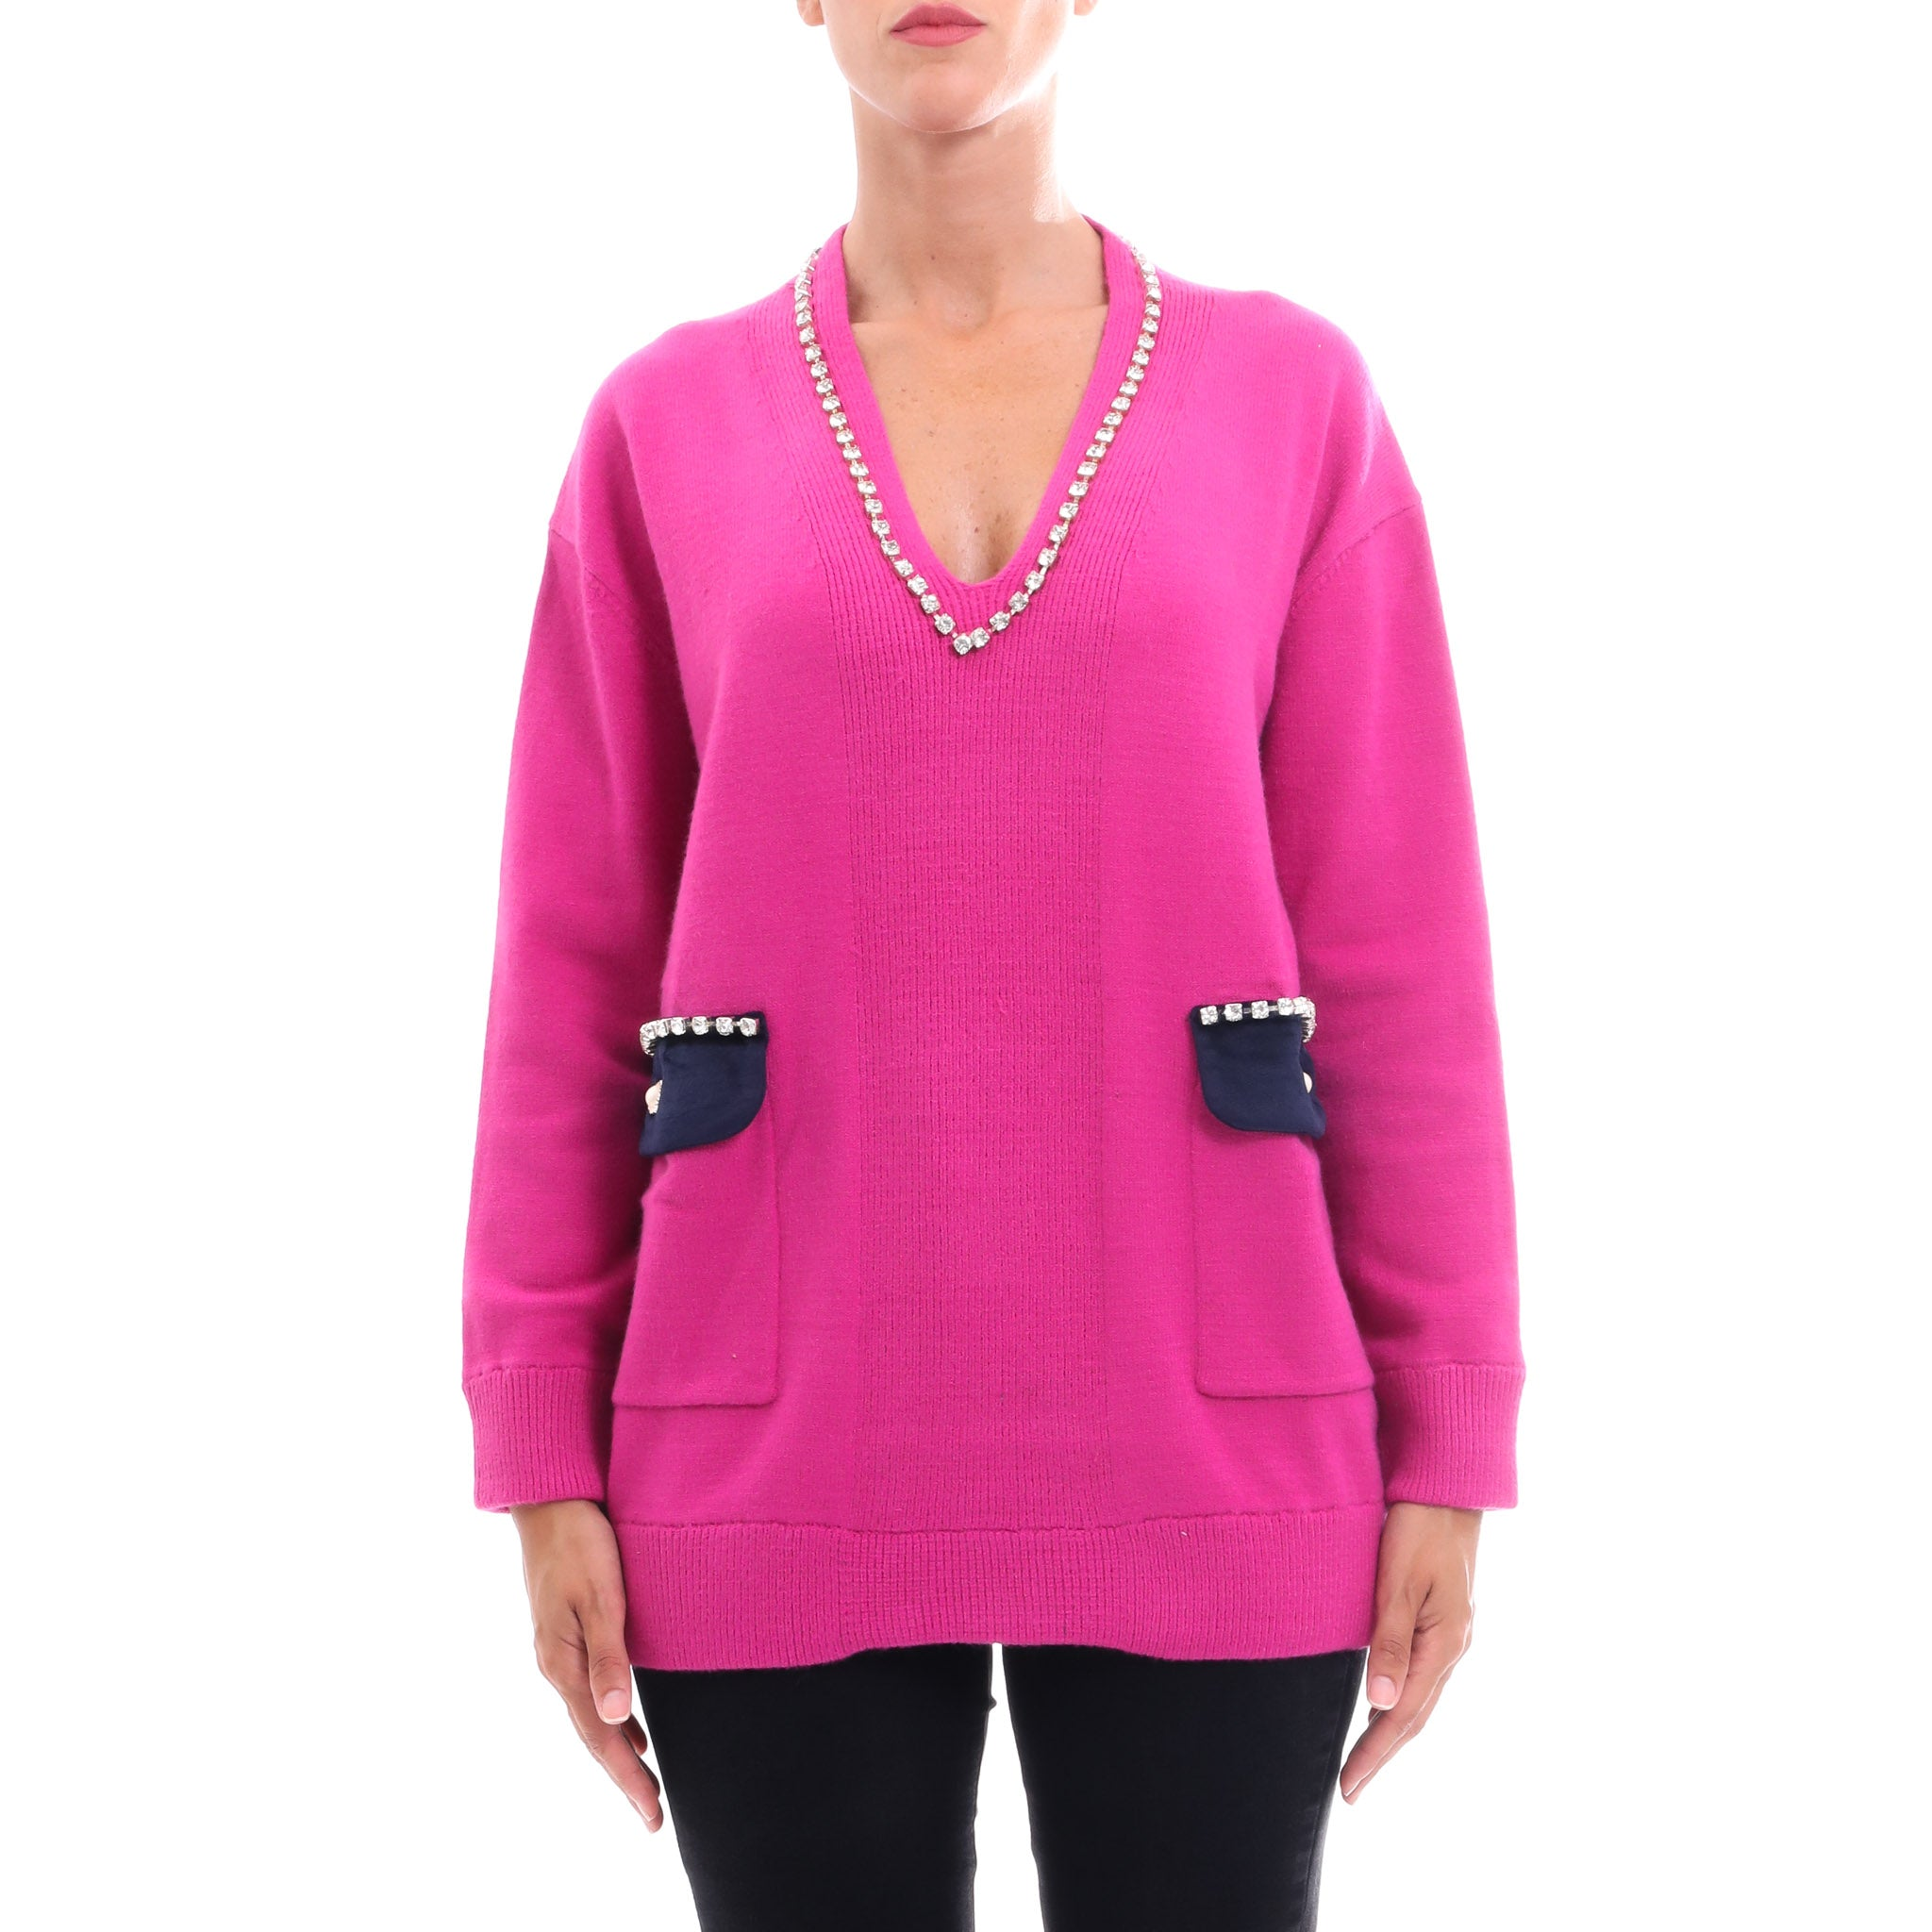 Cashmere Company Crystal Embellished Sweater